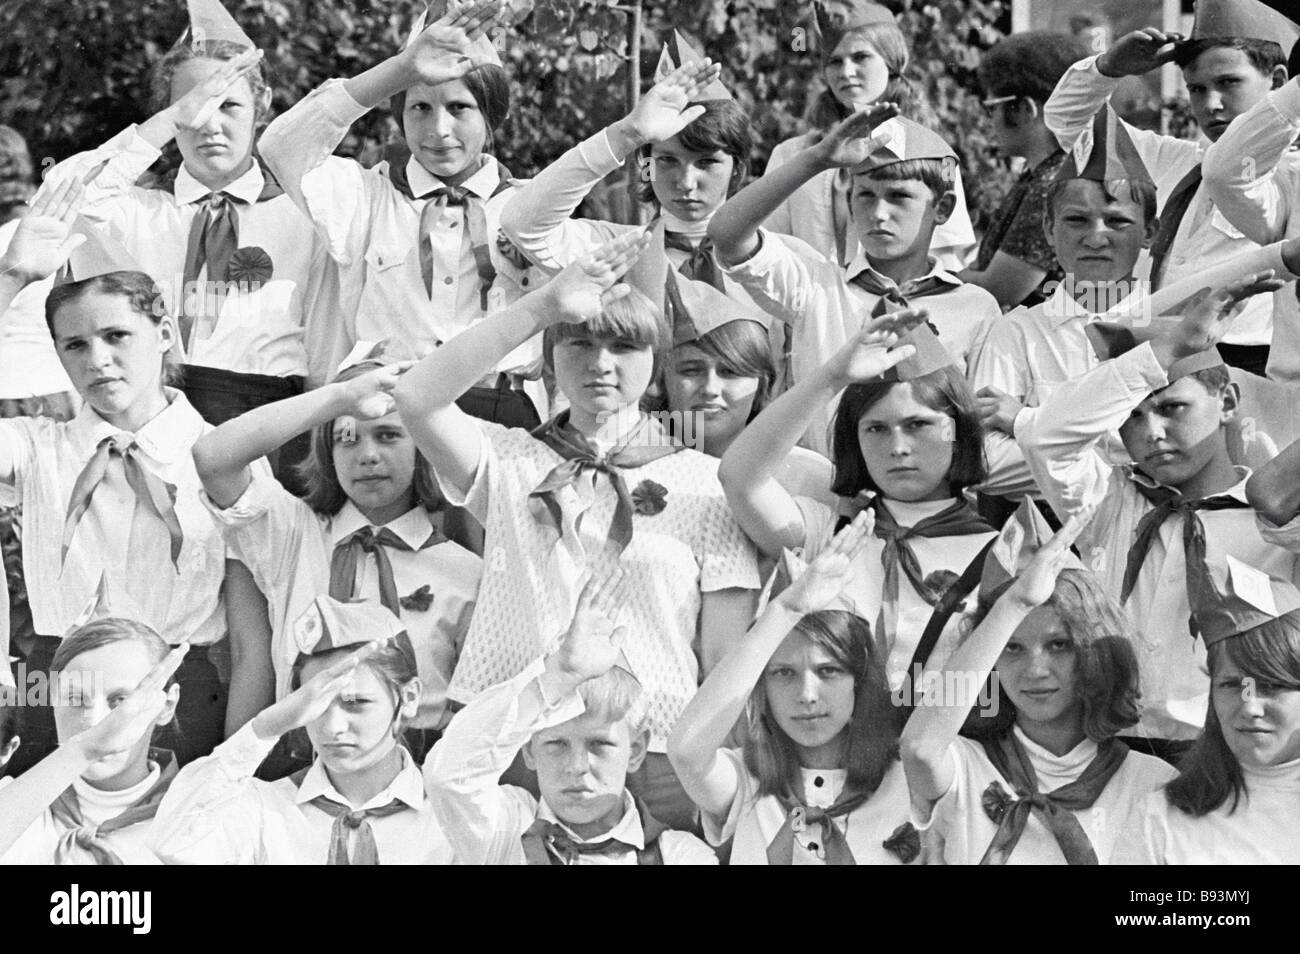 Pioneers saluting at a parade in honor of Pioneer Day - Stock Image